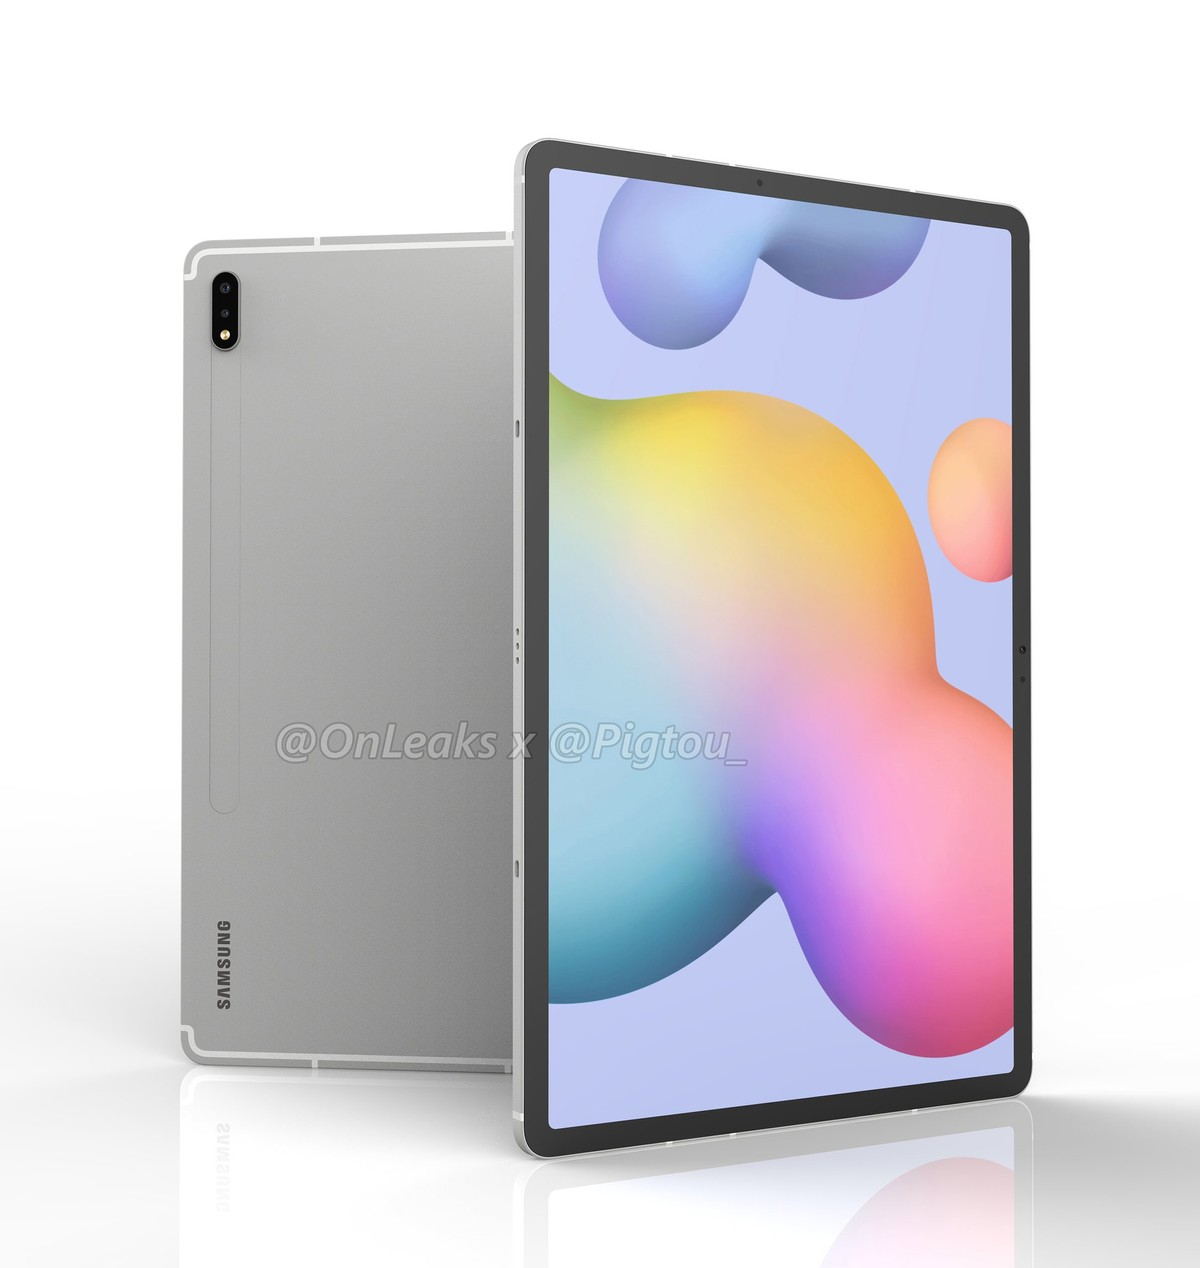 Samsung Galaxy Tab S7+ specs leak: SD 865+ 5G and 10,090mAh battery